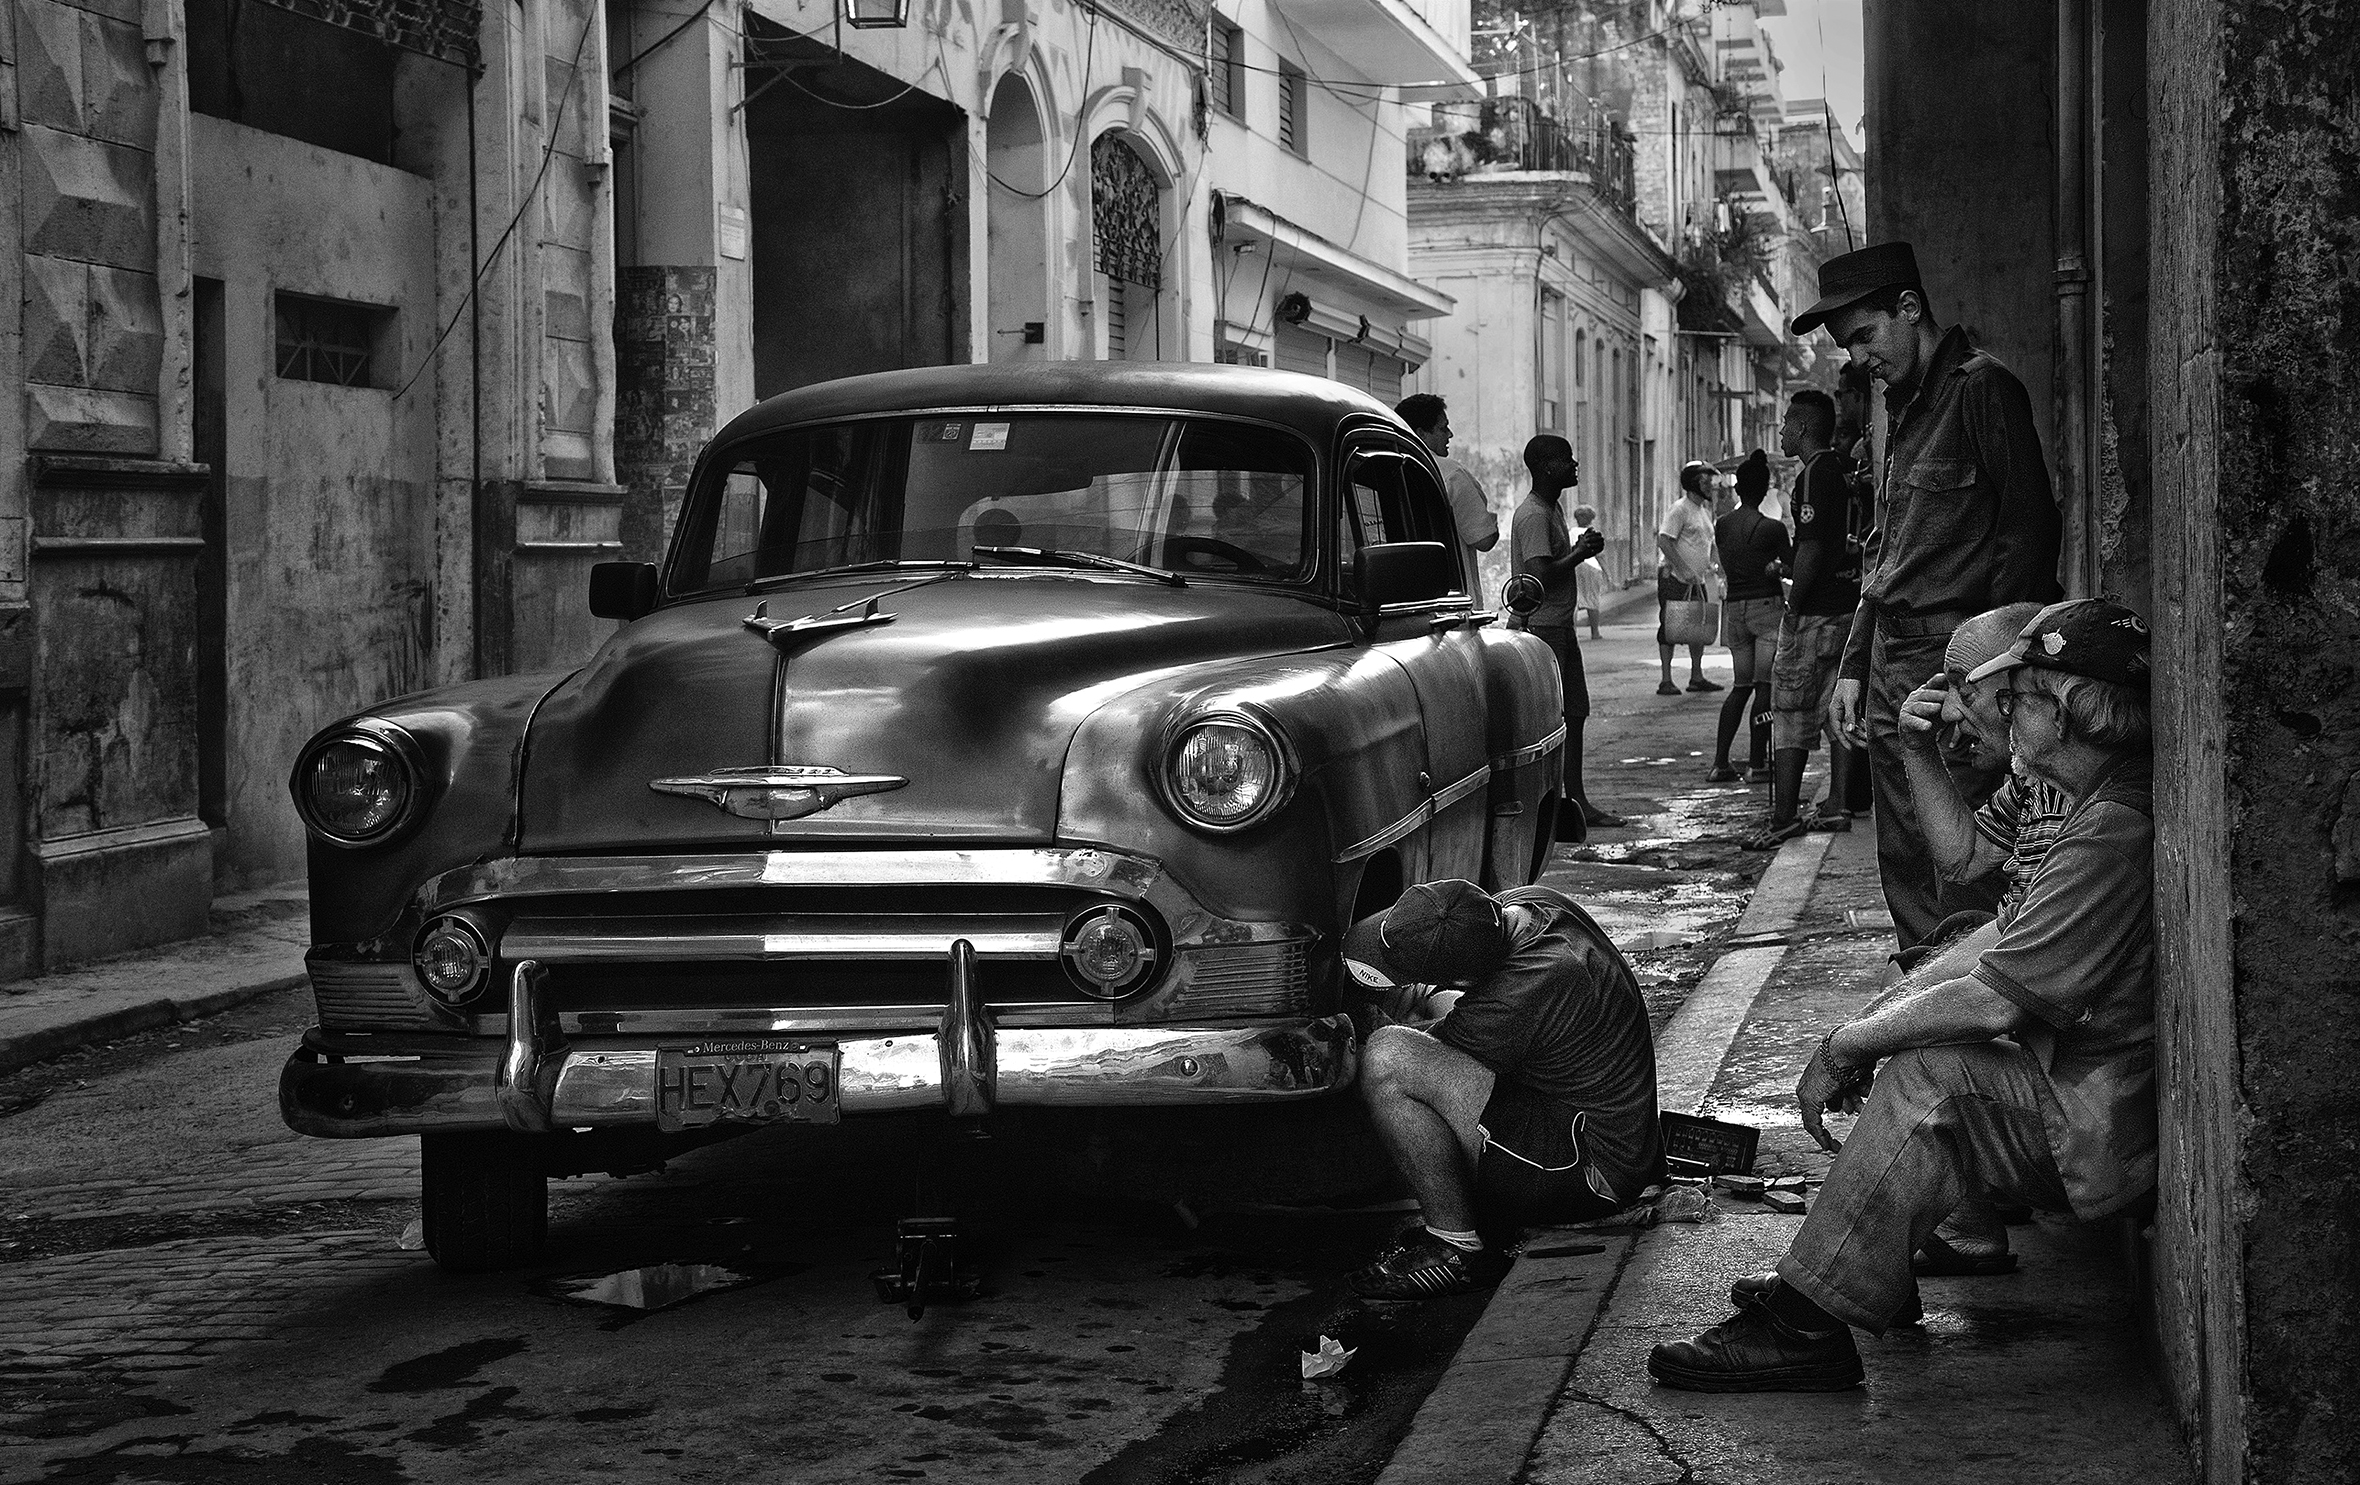 A young man is working on a vintage car with a Cuban license plate parked on the street. A couple of old men are watching from the sidewalk as people go about their daily lives in the background.